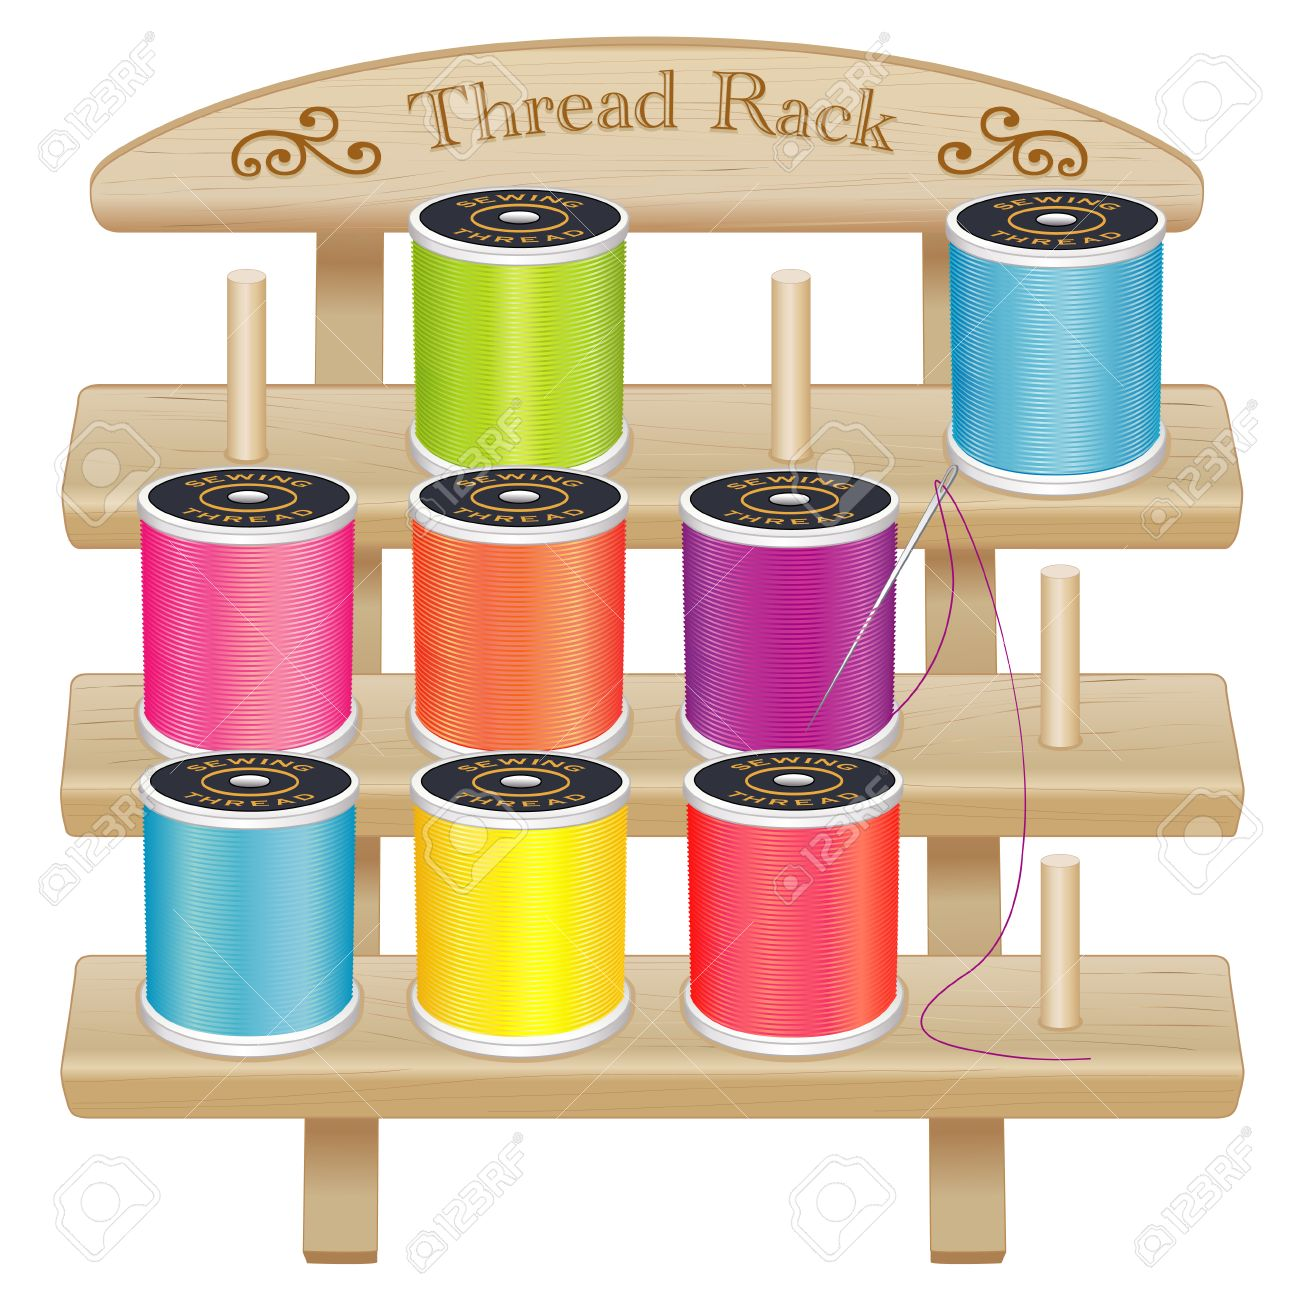 Vector - Wood Thread Spool Storage Rack engraved text and scrolls three pine shelves with pegs silver needle summer bright color threads for sewing ...  sc 1 st  123RF.com & Wood Thread Spool Storage Rack Engraved Text And Scrolls Three ...